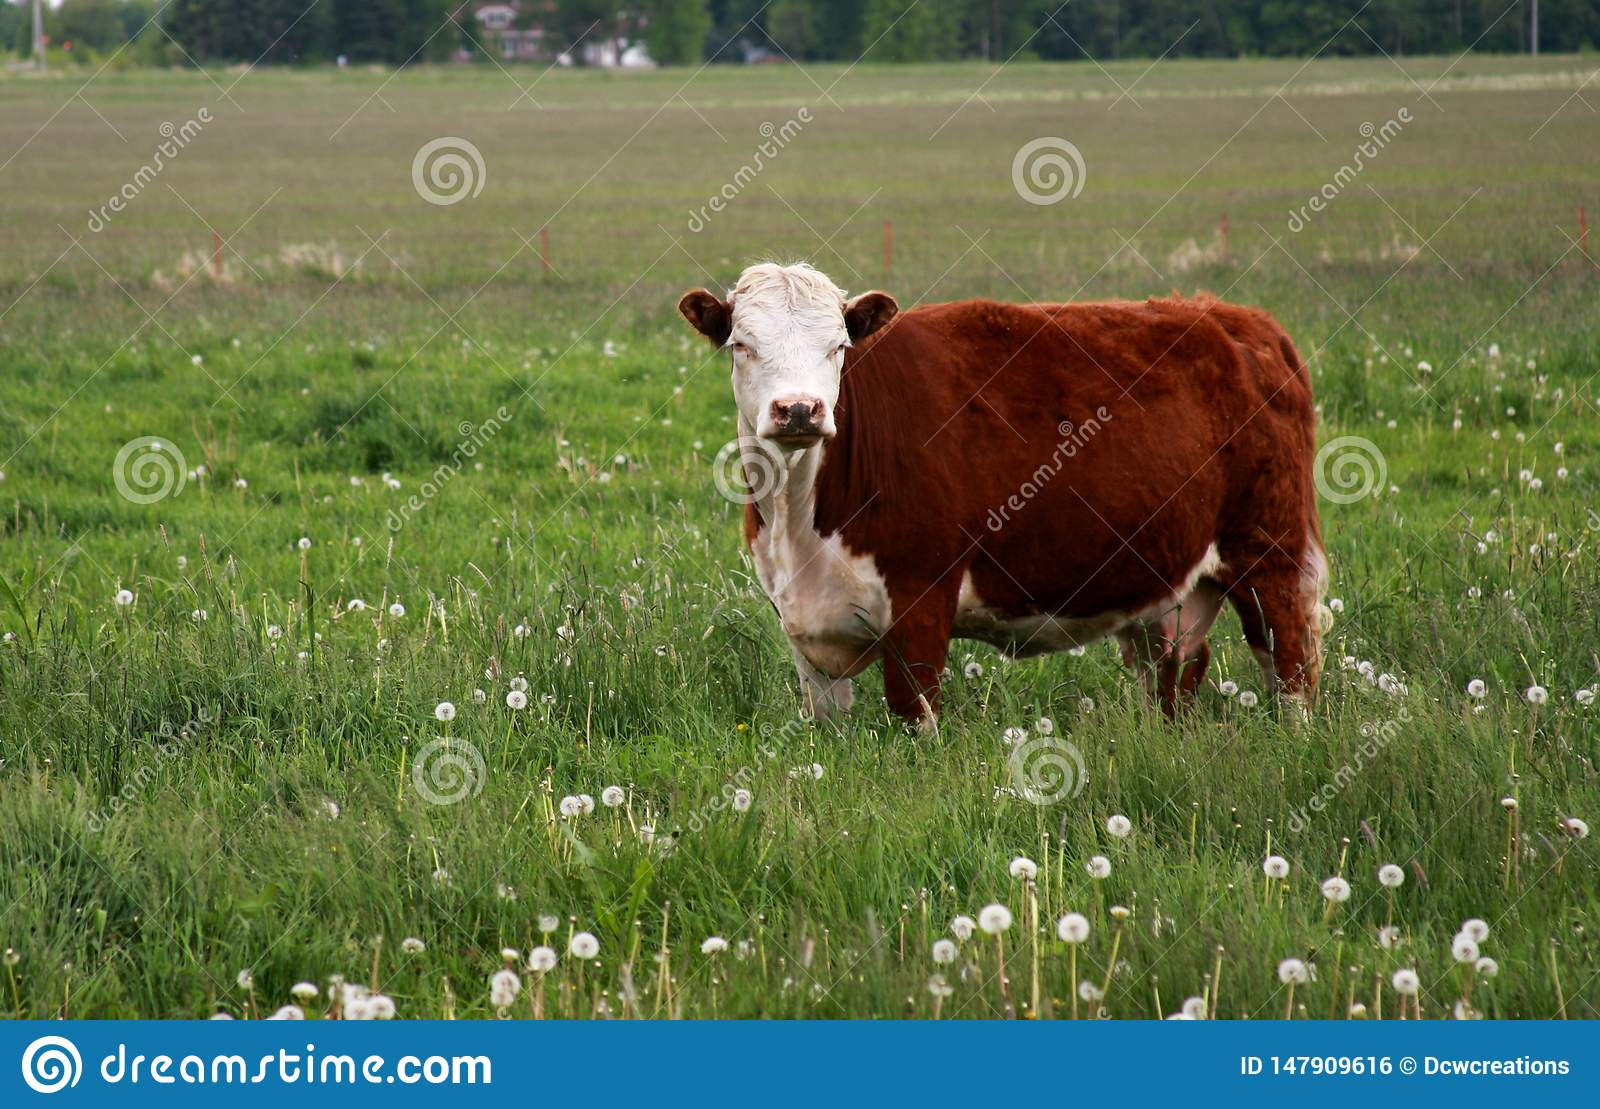 Hereford Cow in a Summer Pasture